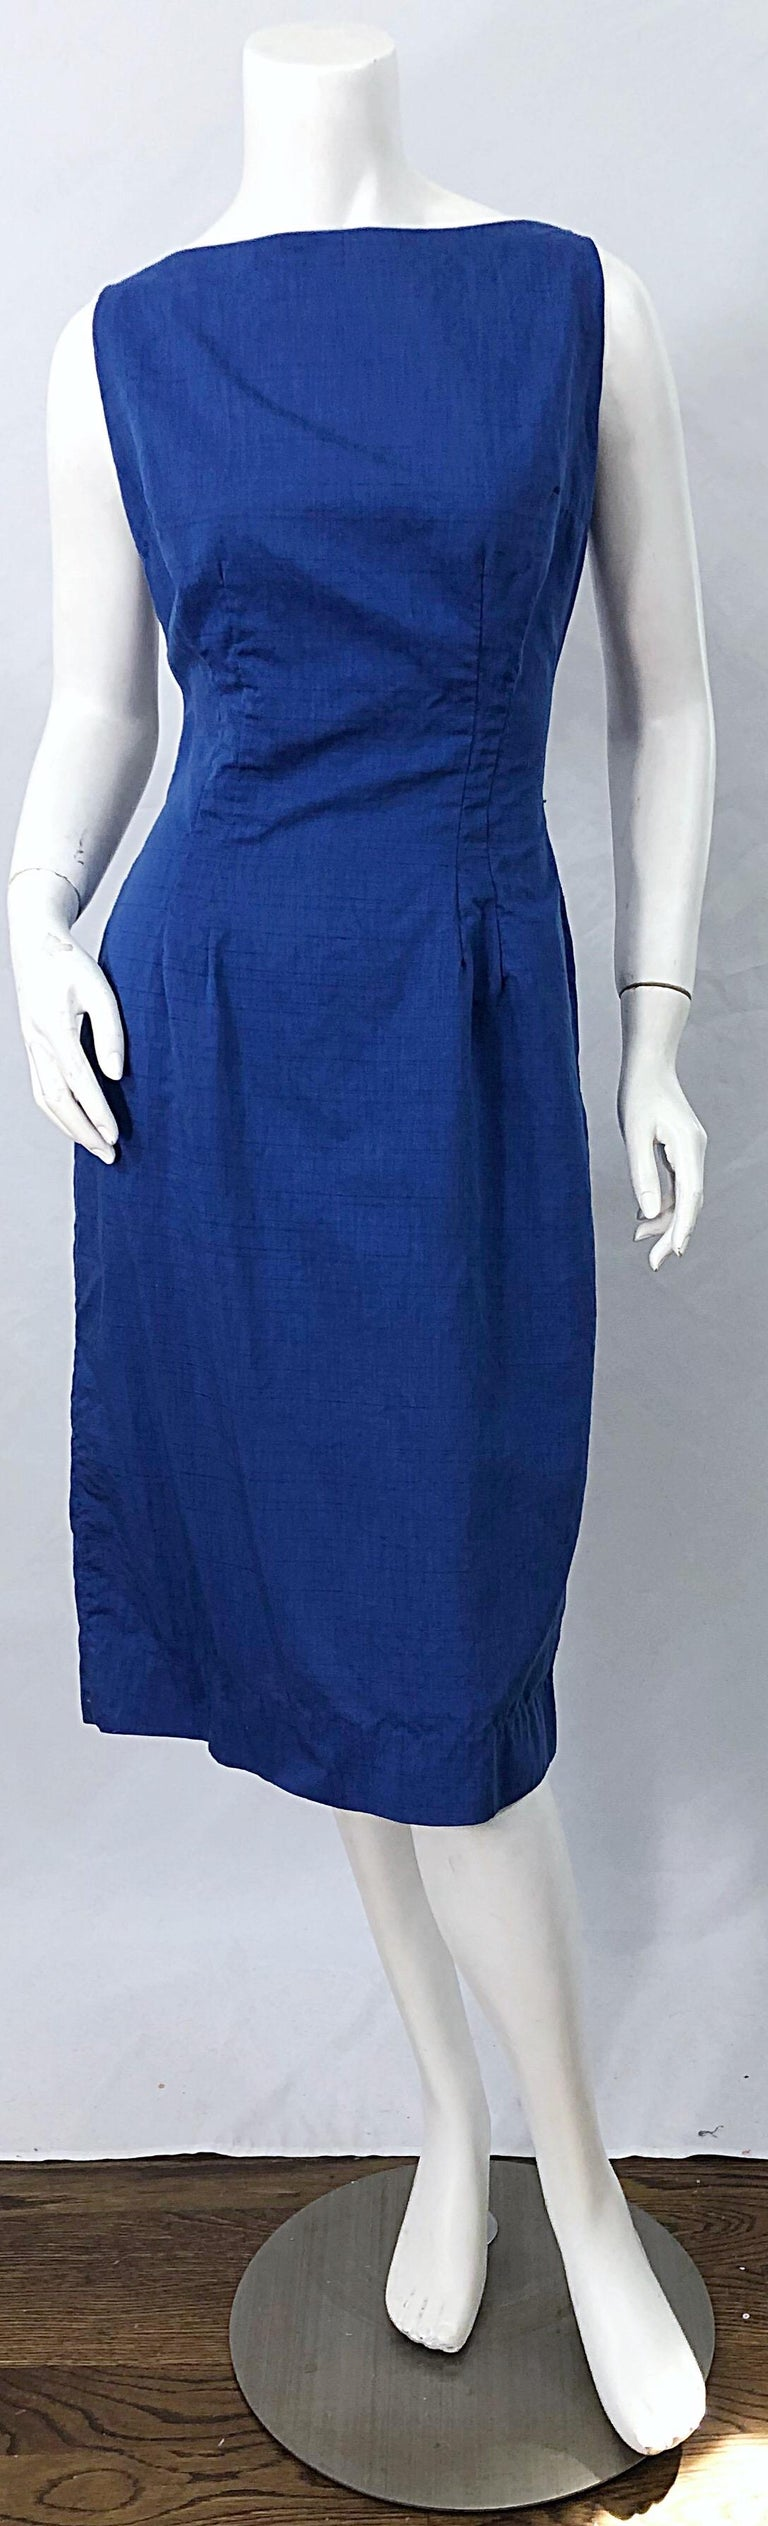 Chic 1950s Cobalt Blue Cotton High Neck Vintage 50s Sleeveless Wiggle Dress For Sale 8